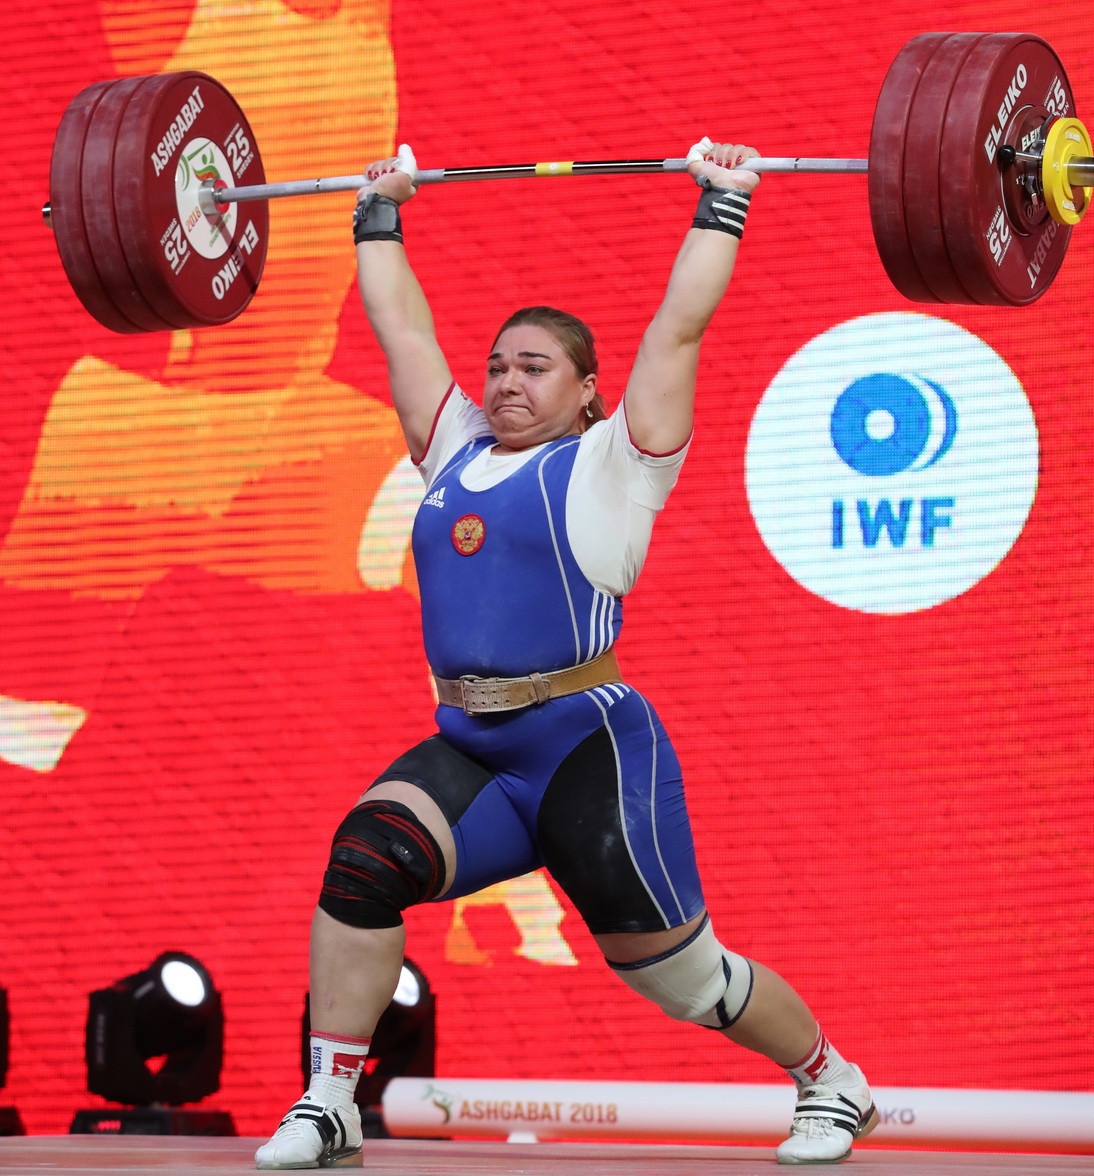 Kashirina boosts Russia's gold medal tally to five after sensational performance on final day of 2018 IWF World Championships